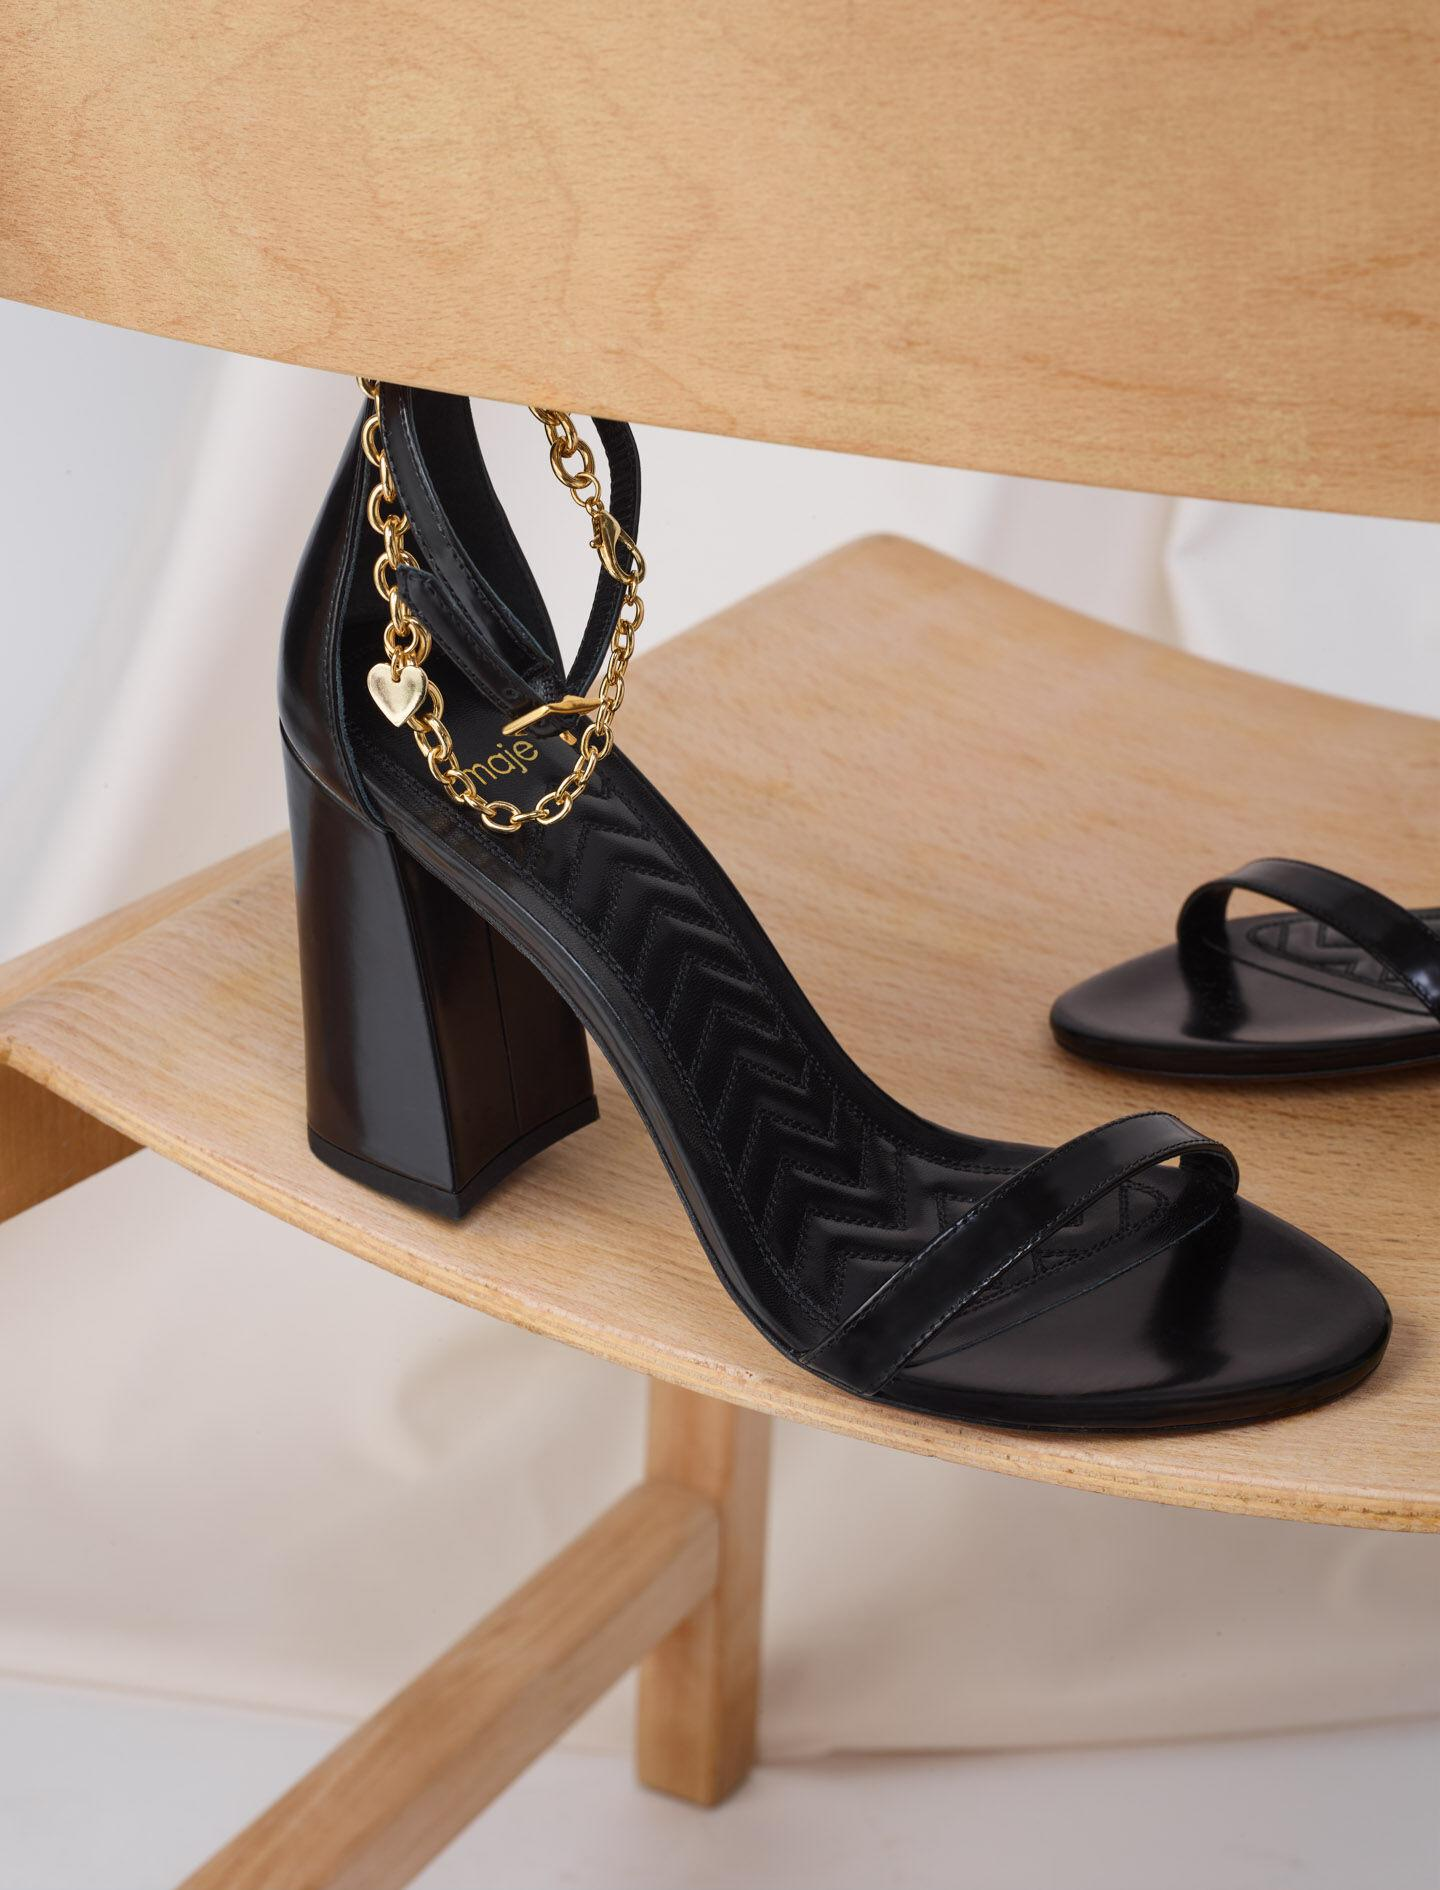 HIGH HEEL SANDALS WITH GOLD-TONE CHAIN 3